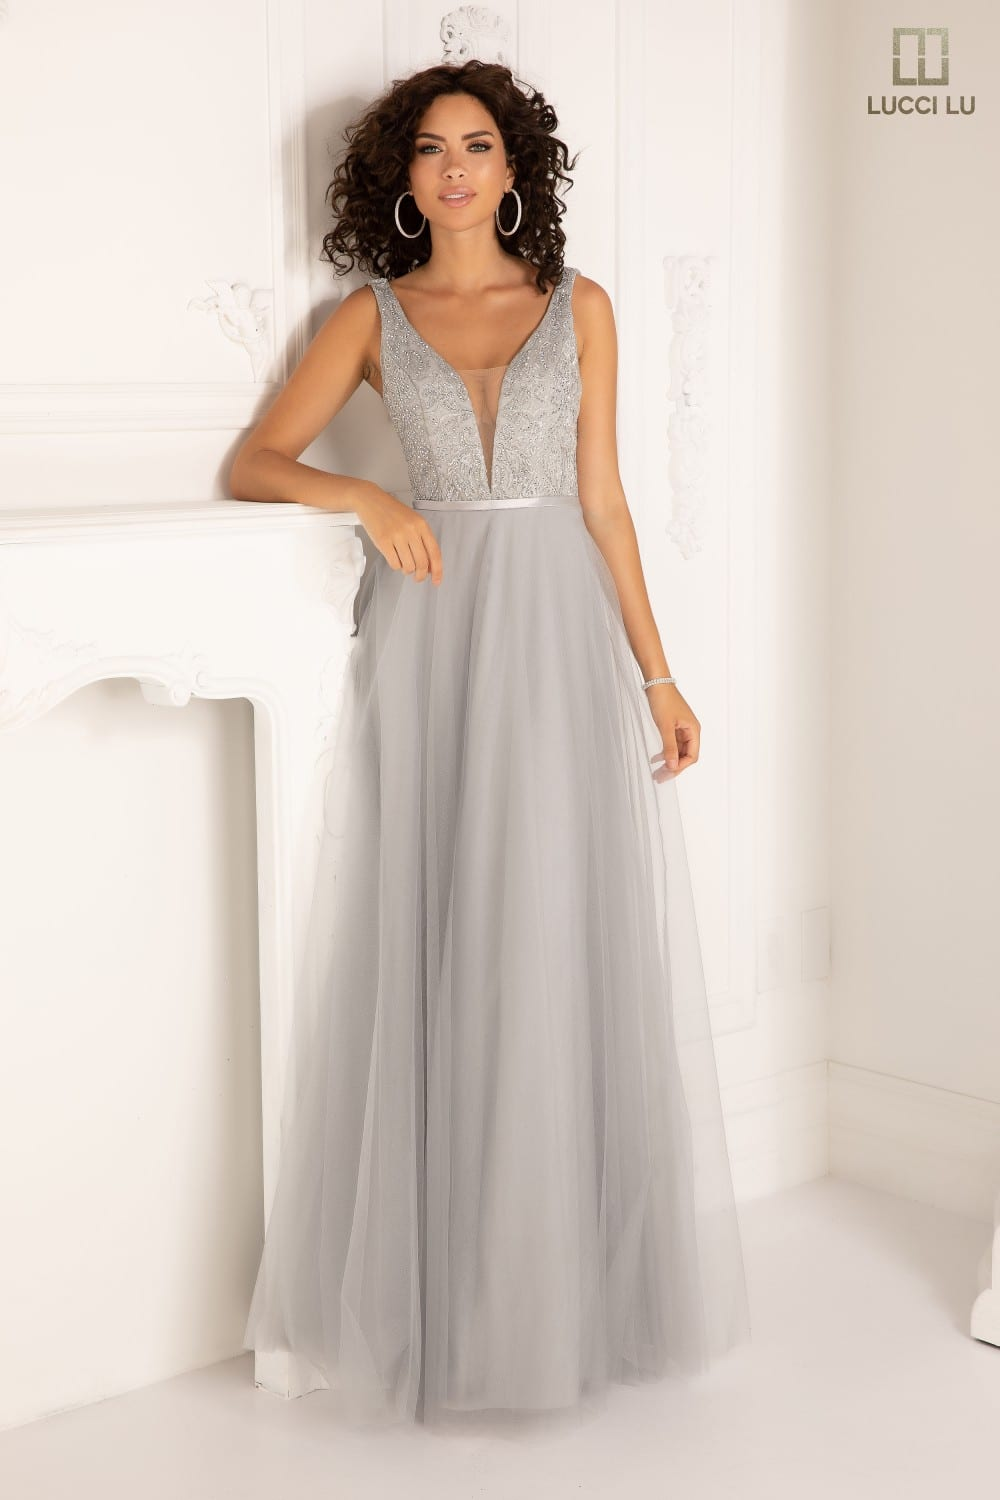 Embroidered top, shimmer tulle, plunging neckline front and back, belt, ballgown